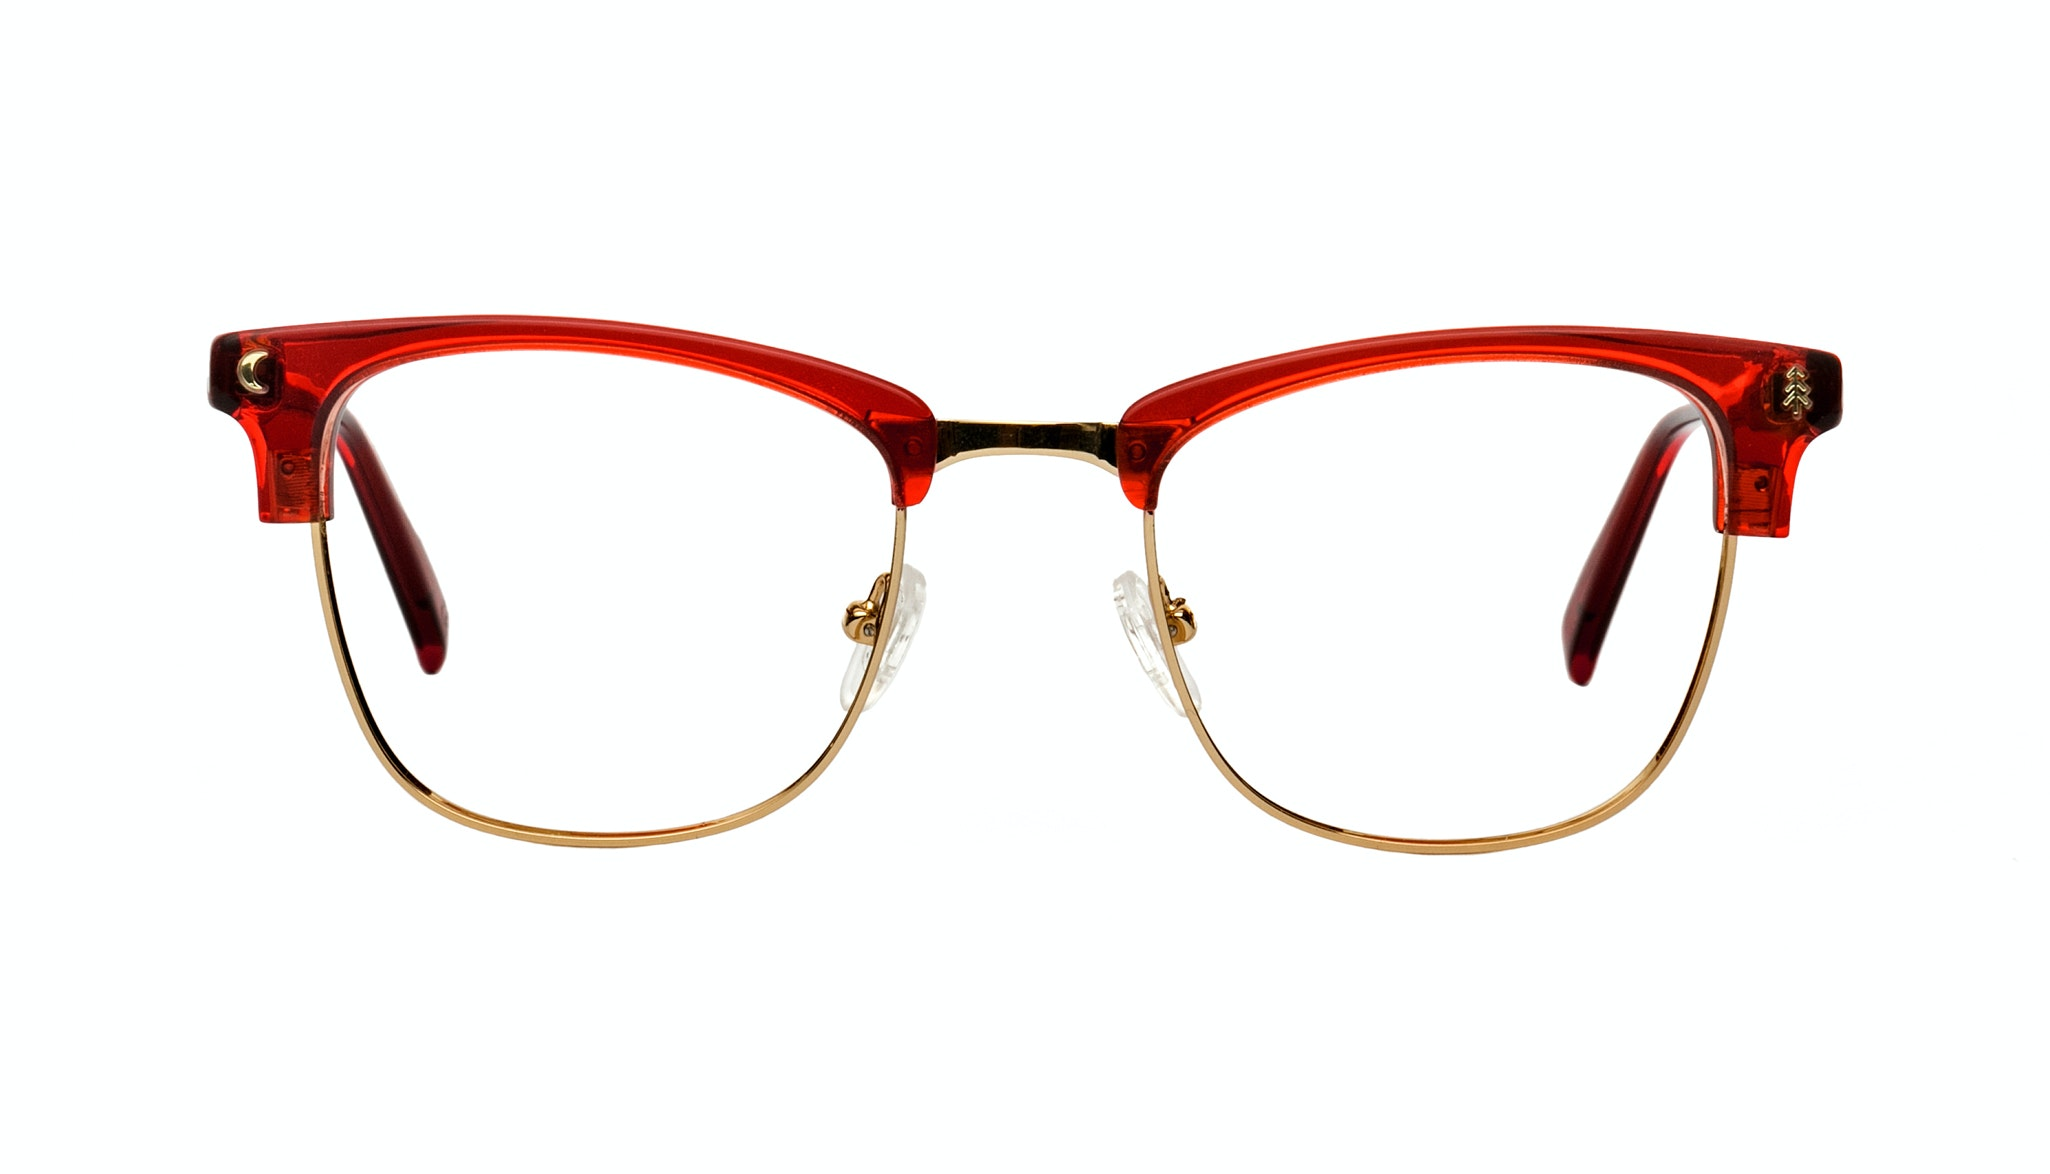 Affordable Fashion Glasses Rectangle Eyeglasses Women Stargazer Kindled Red Front